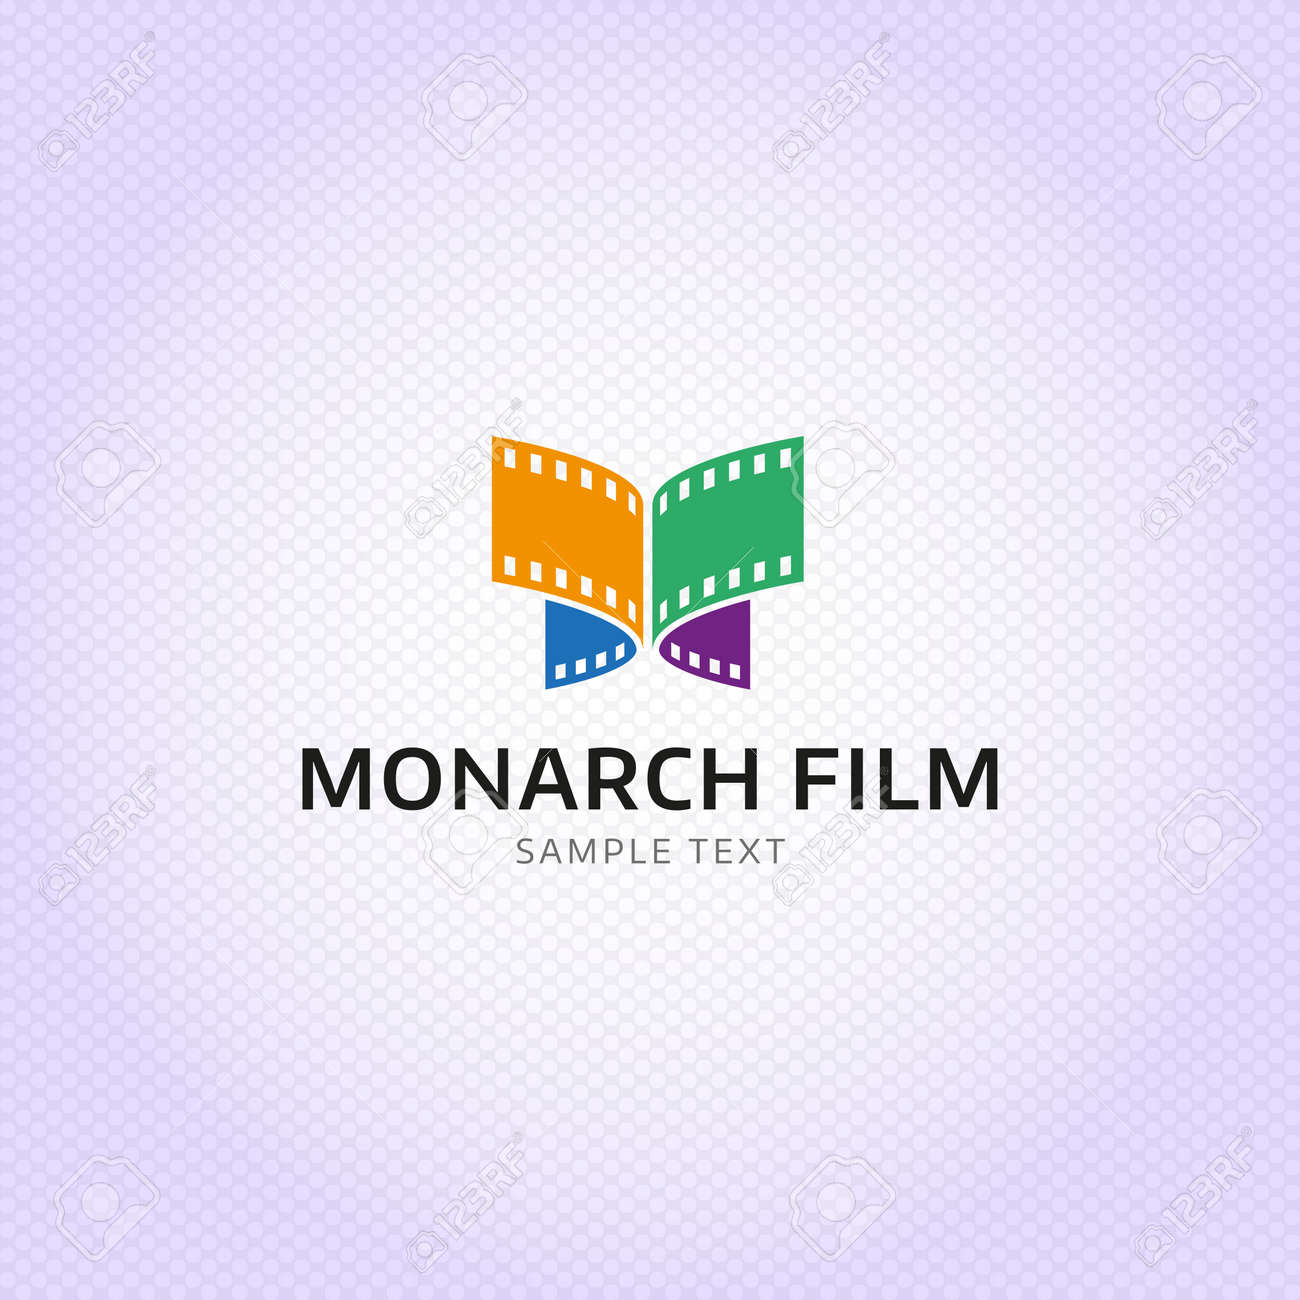 Monarch Film production logo design  Colorful butterfly celluloid